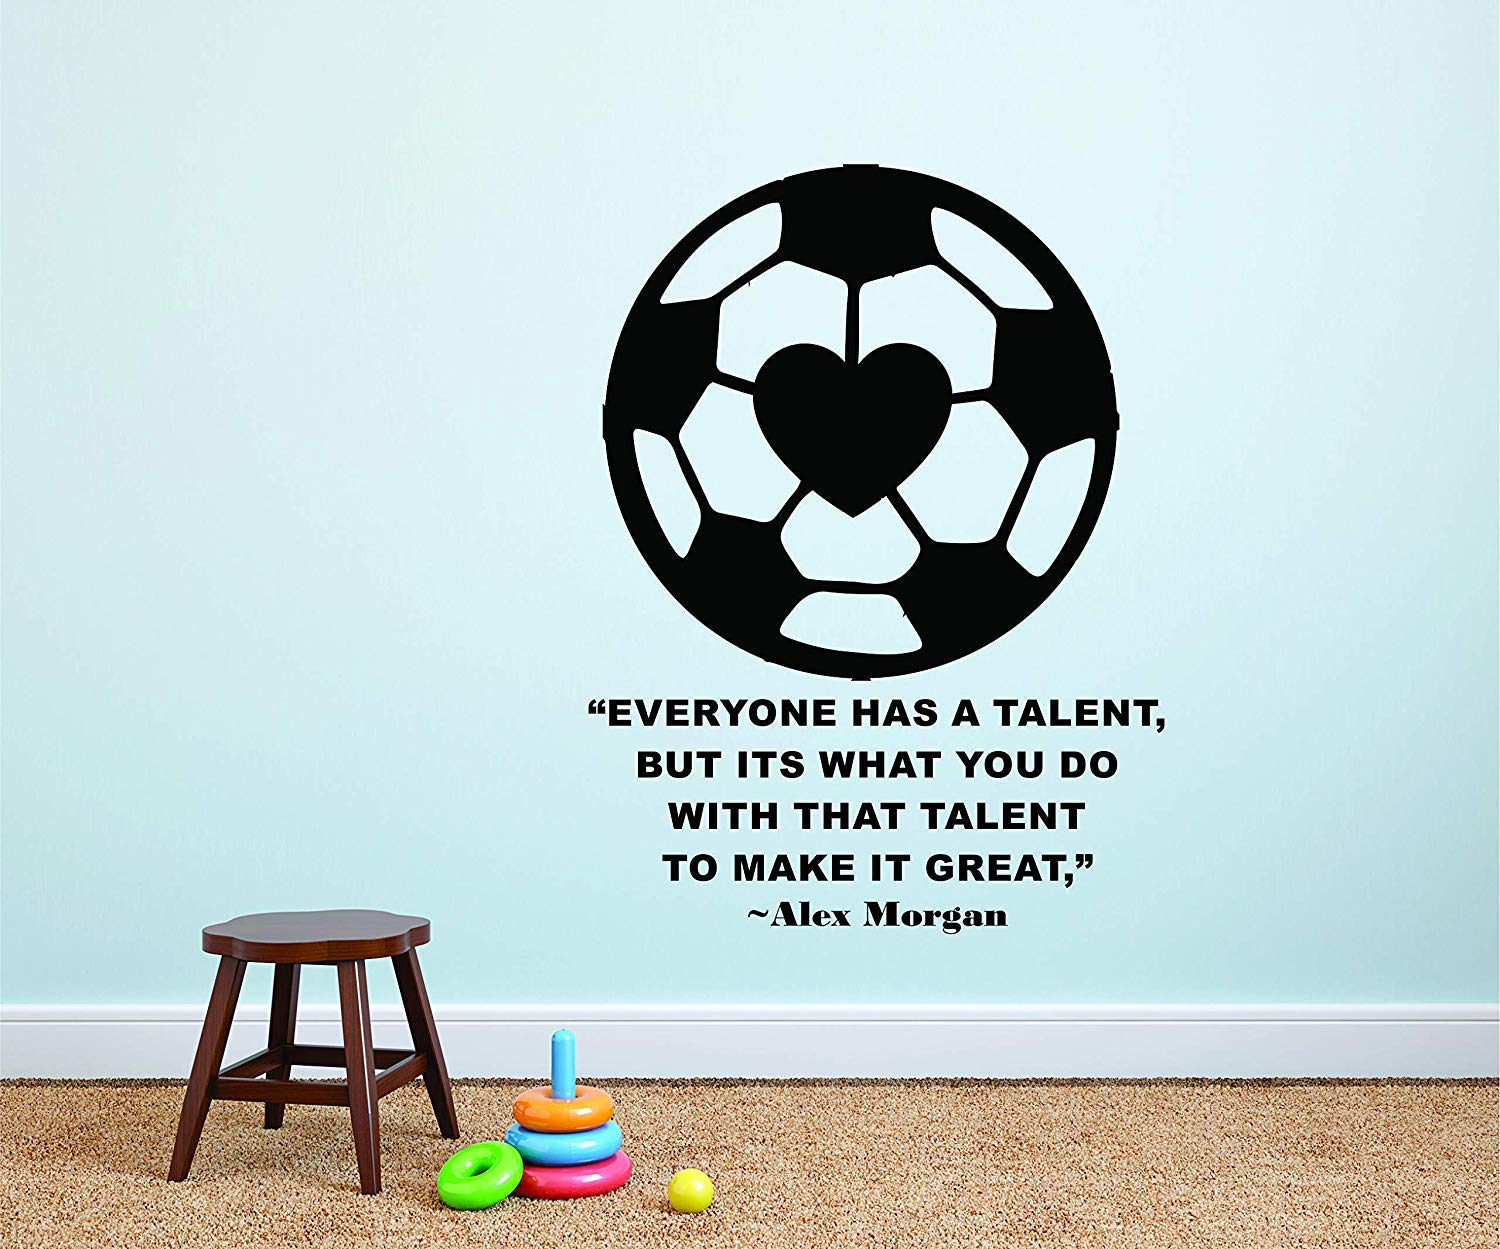 Alex Morgan Wall Decals for Kids Bedrooms Girls Soccer Stickers for Bedroom Sports Designs Vinyl Art Decor for Childrens Walls Cute Rare Heart Ball Girl Alex Morgan Quote Quotes Balls Size 30x30 inch